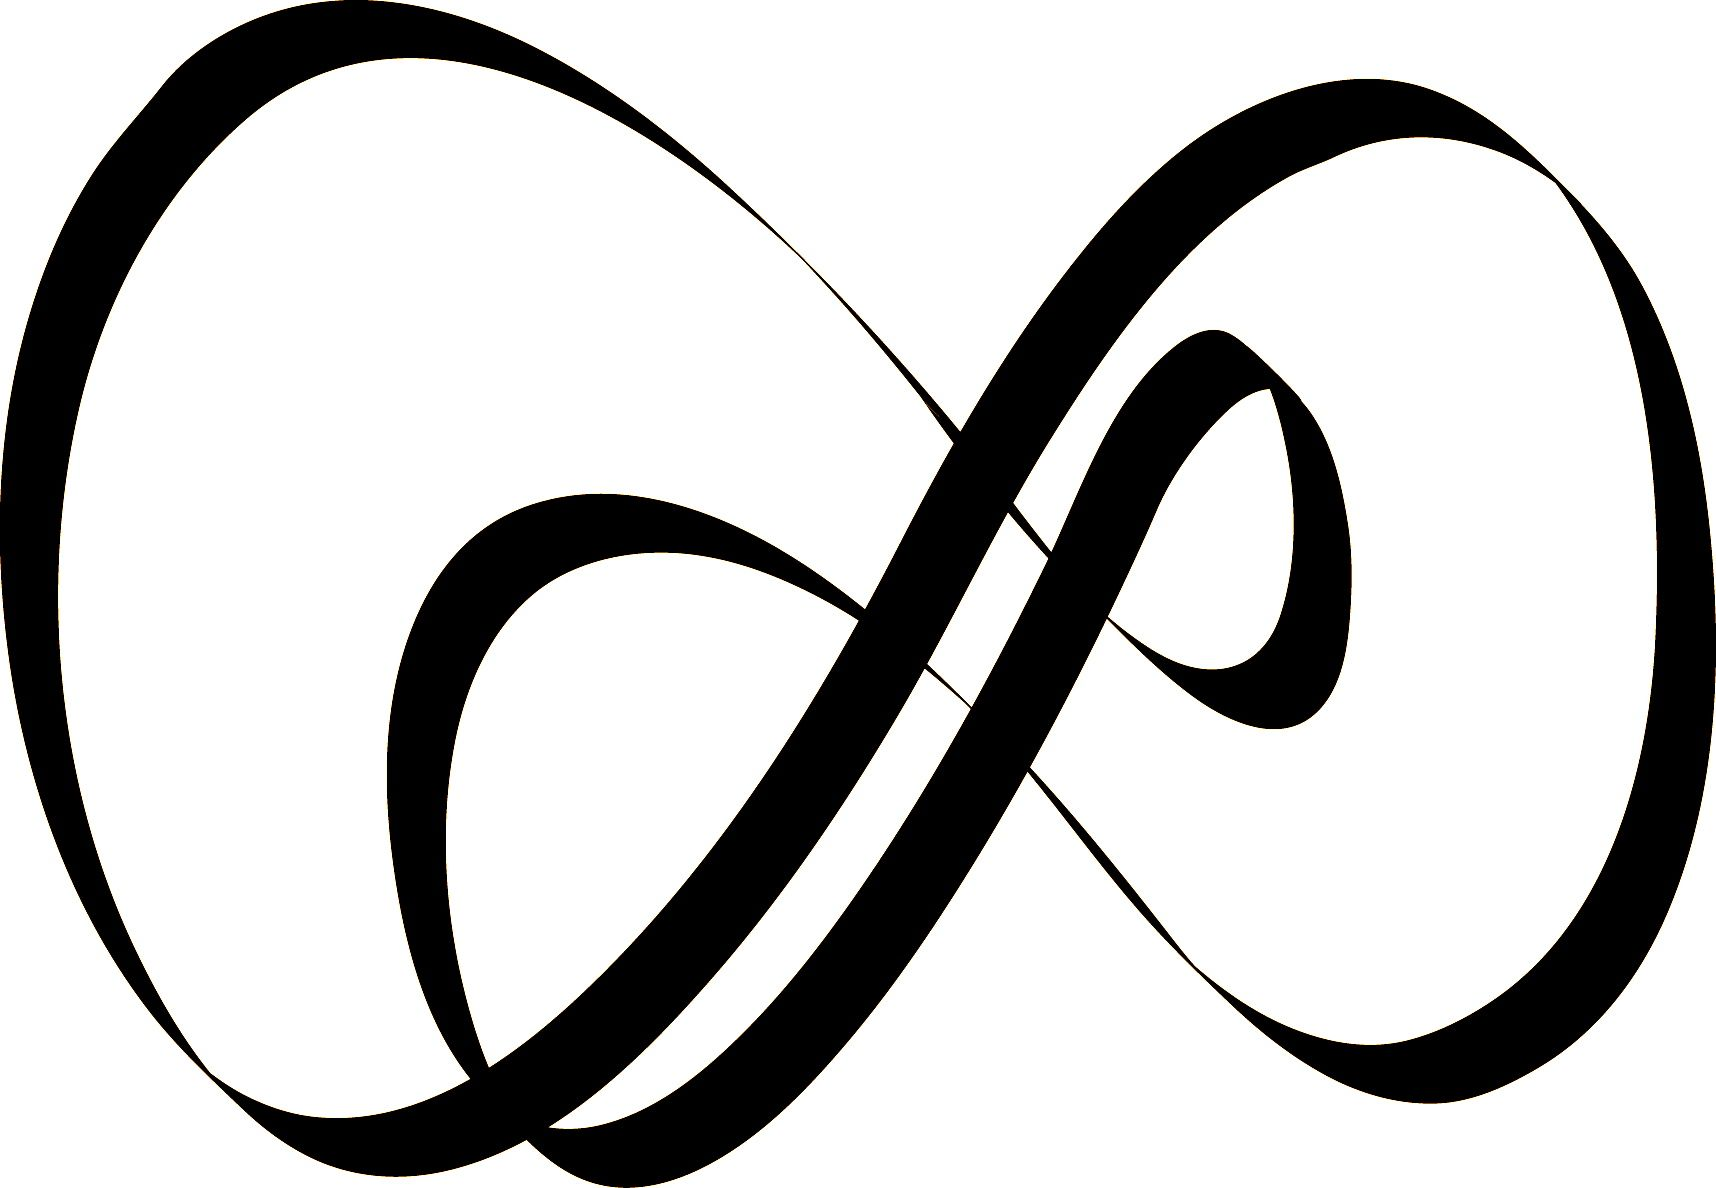 Pin double infinity caracolas en elmar tattoo best on pinterest pin double infinity caracolas en elmar tattoo best on pinterest anny biocorpaavc Choice Image